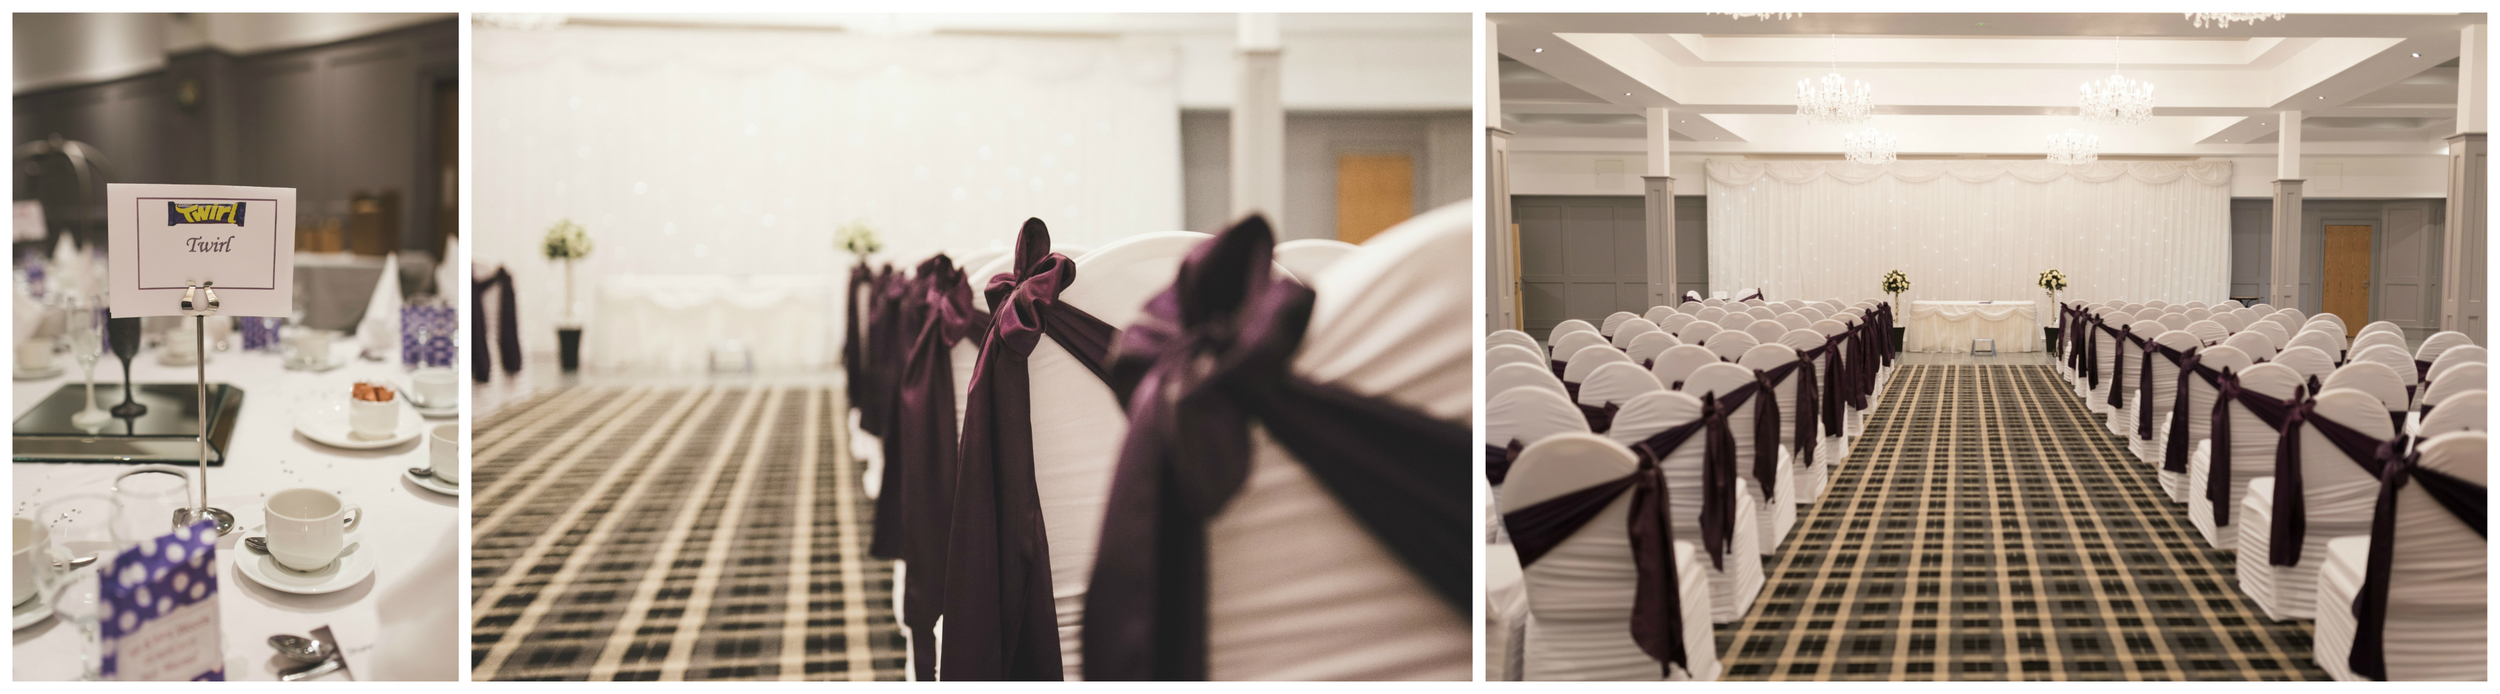 The room was beautifully decorated by Bernie at Over the Moon Wedding & Event Stylists and fitted perfectly with Philip and Violet's Cadburys theme.